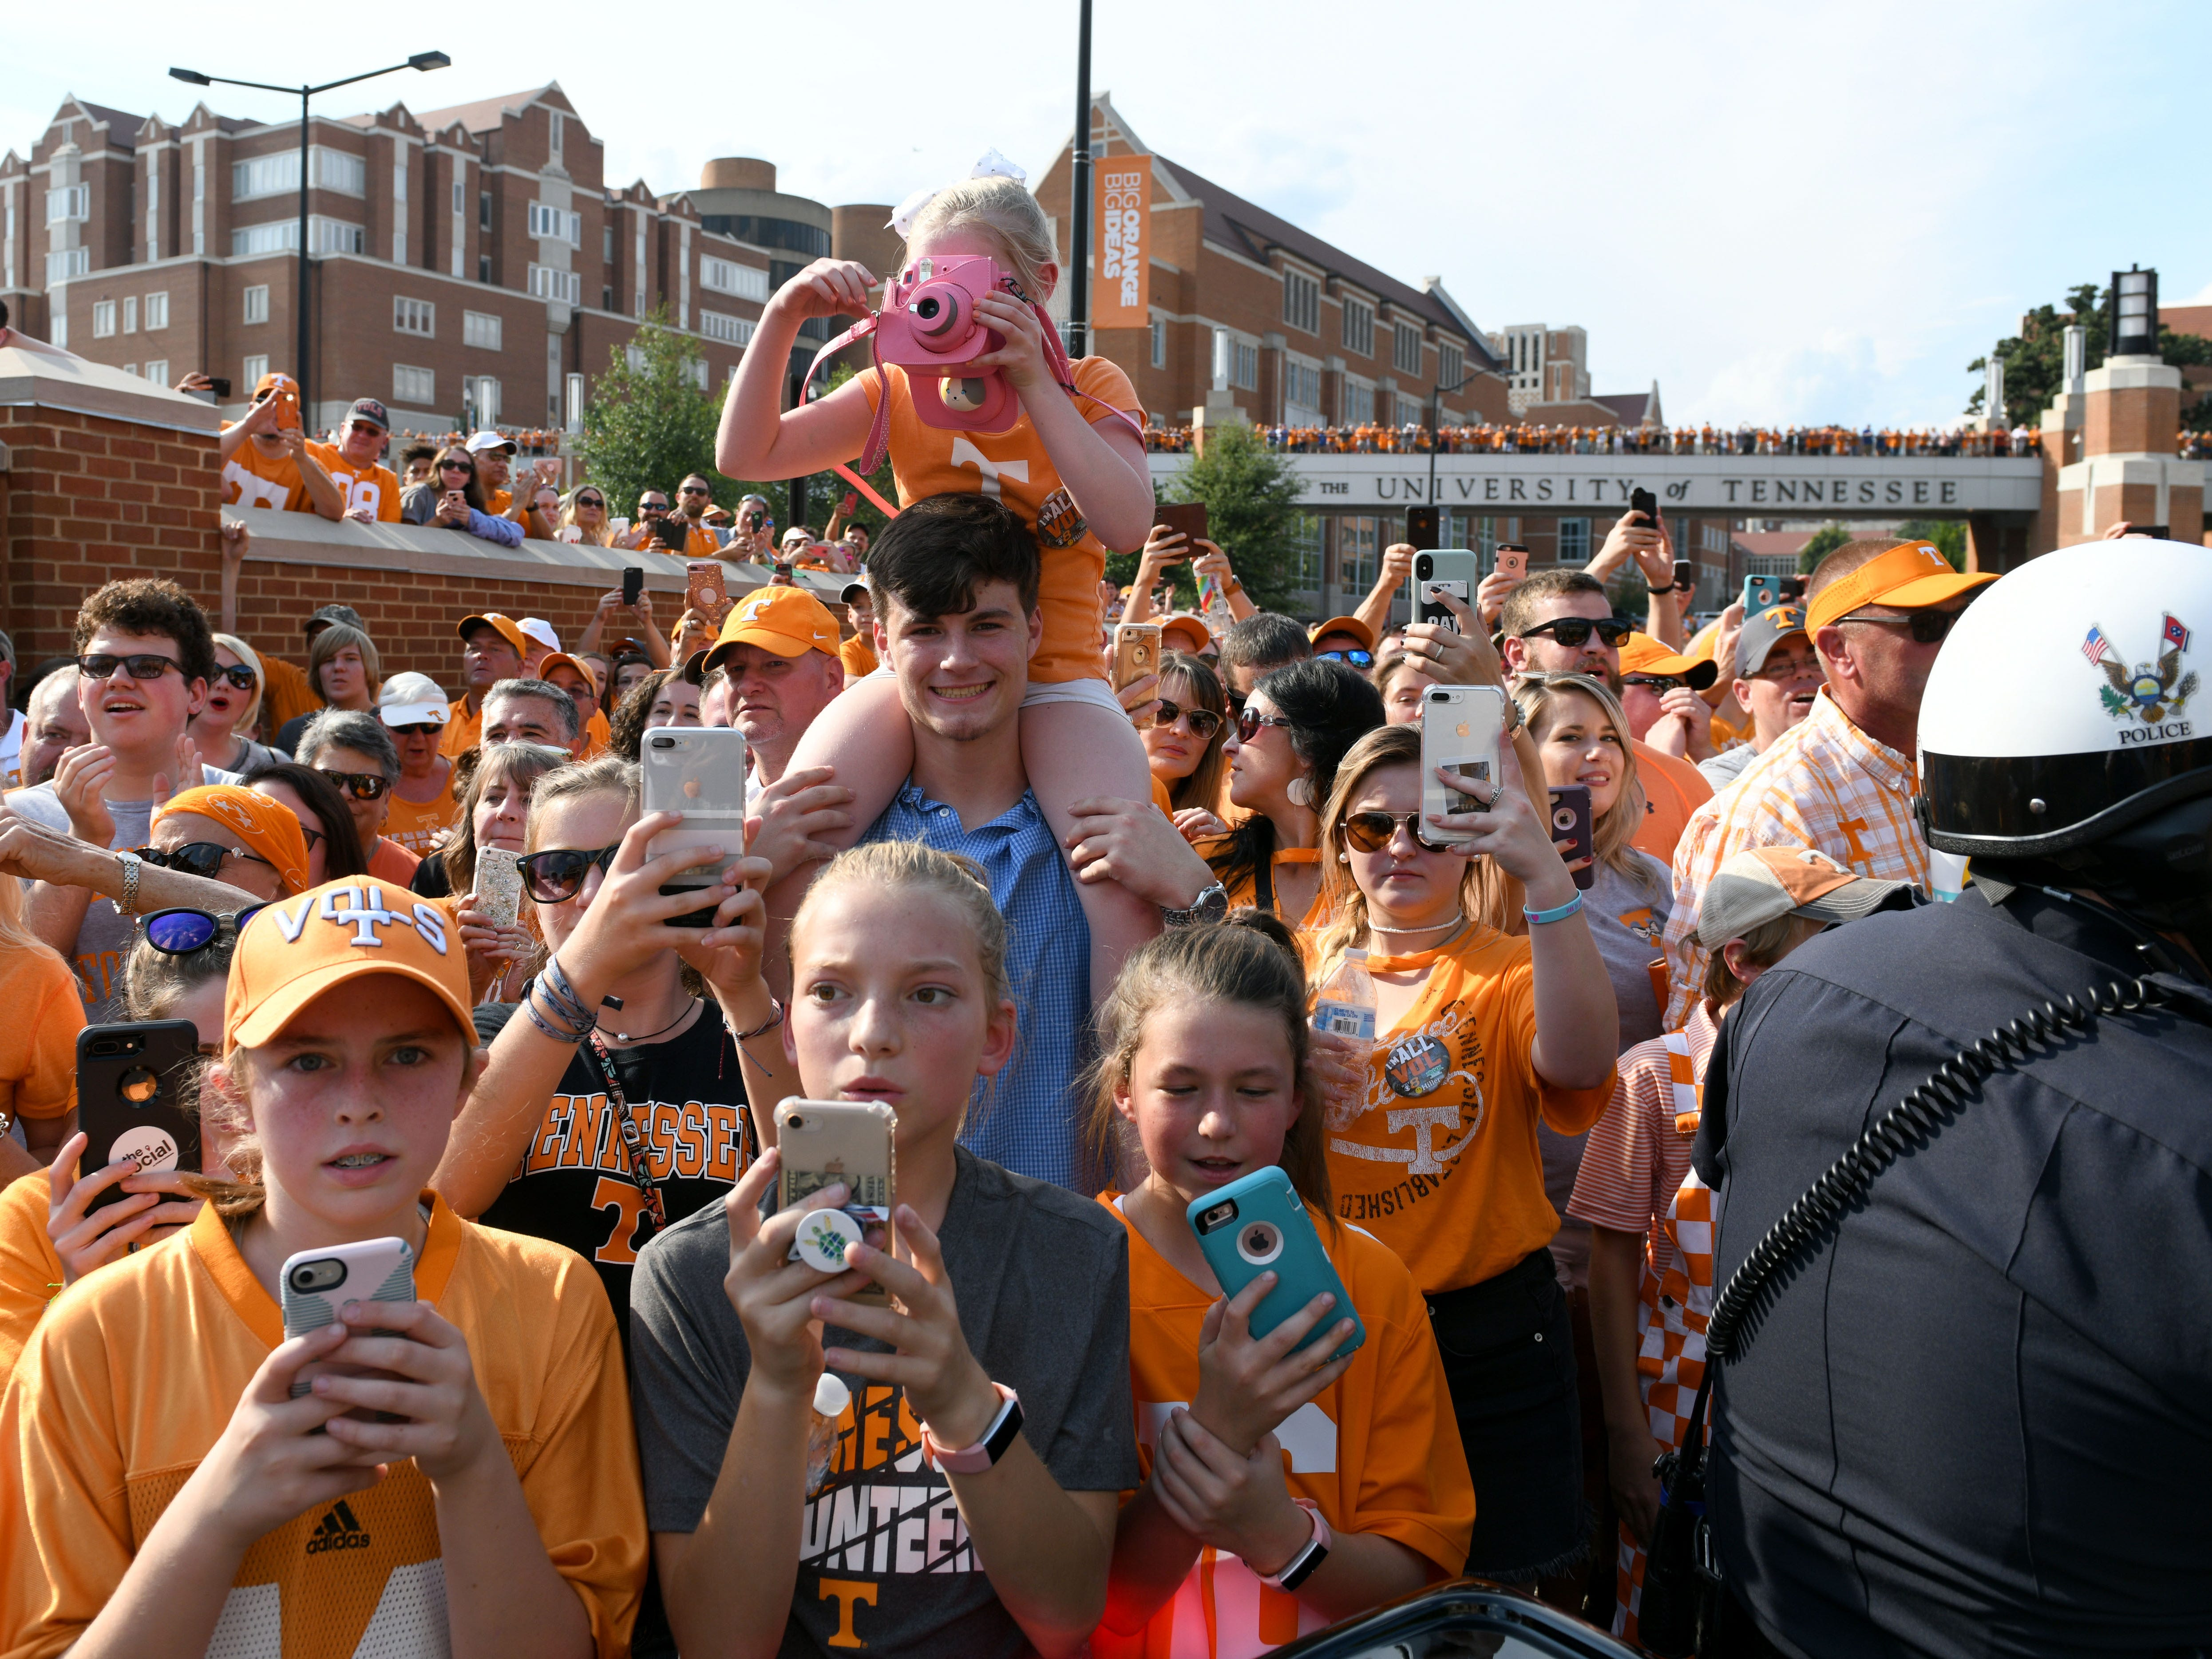 Fans taking photos during the Vol Walk before the game against Florida in Neyland Stadium Saturday, September 22, 2018 in Knoxville, Tenn.